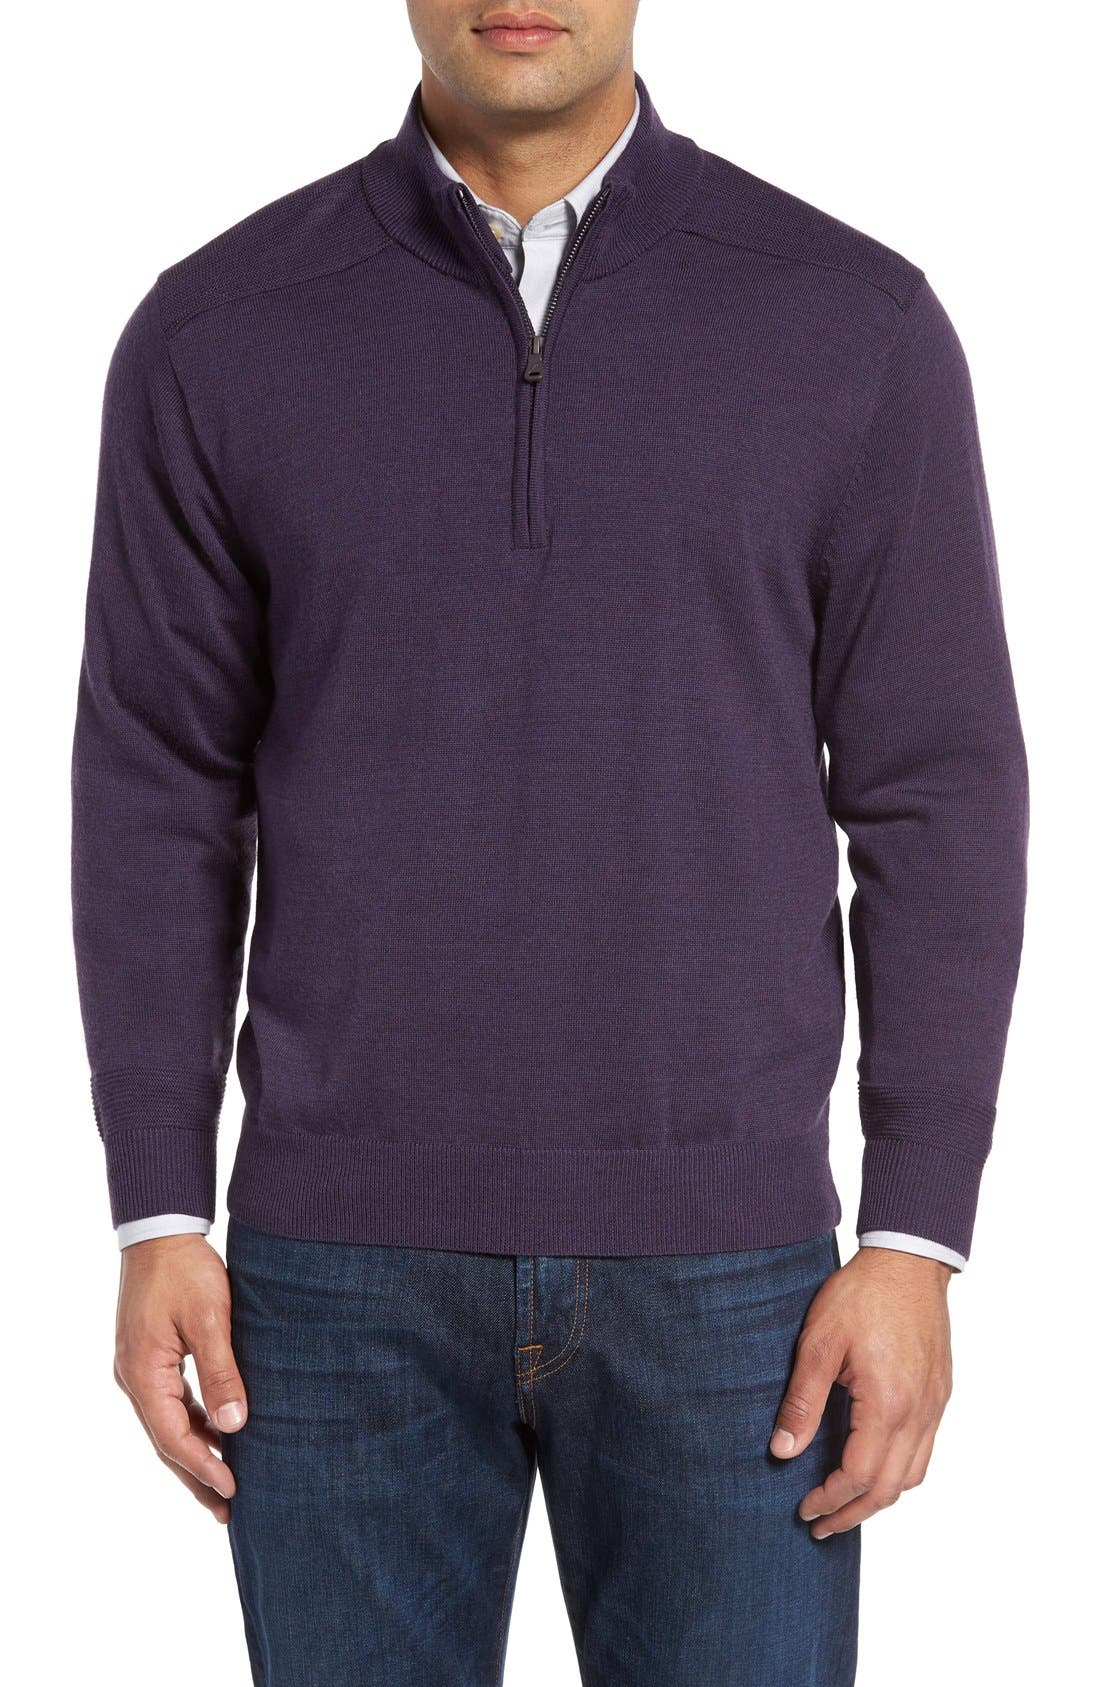 Alternate Image 1 Selected - Cutter & Buck Douglas Quarter Zip Wool Blend Sweater